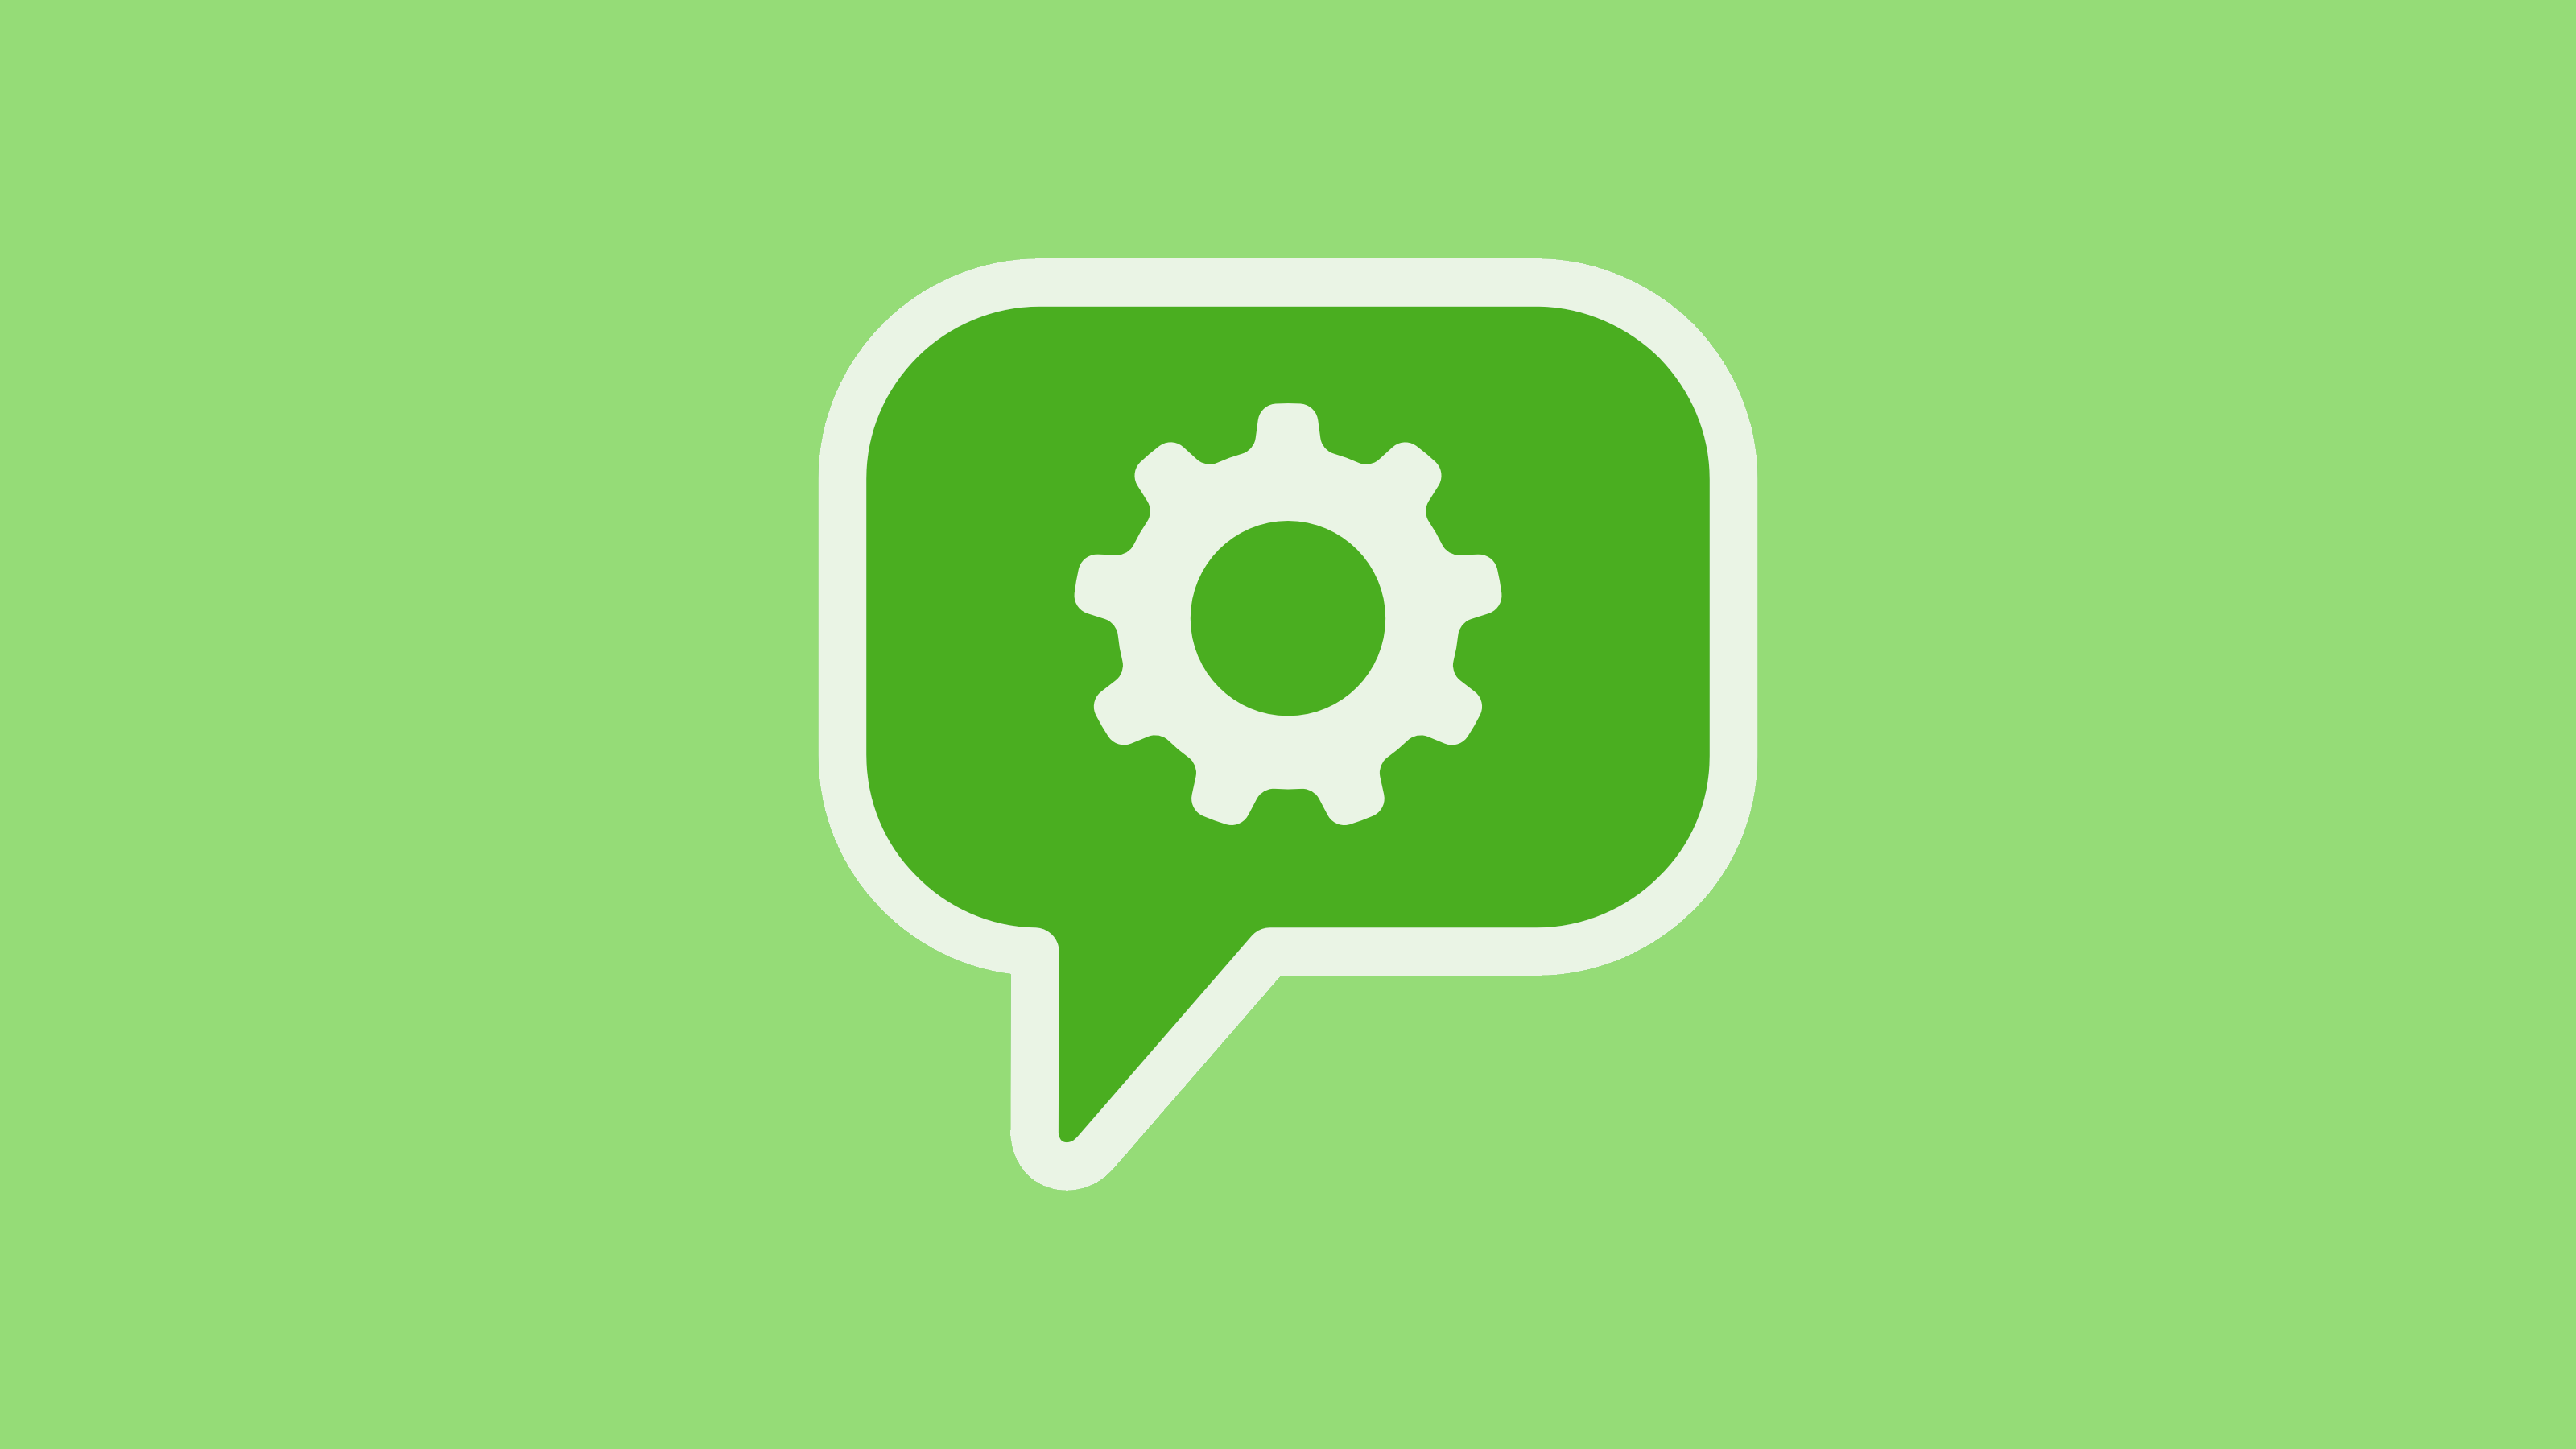 whatsapp-business-api_3.png (3200×1800)